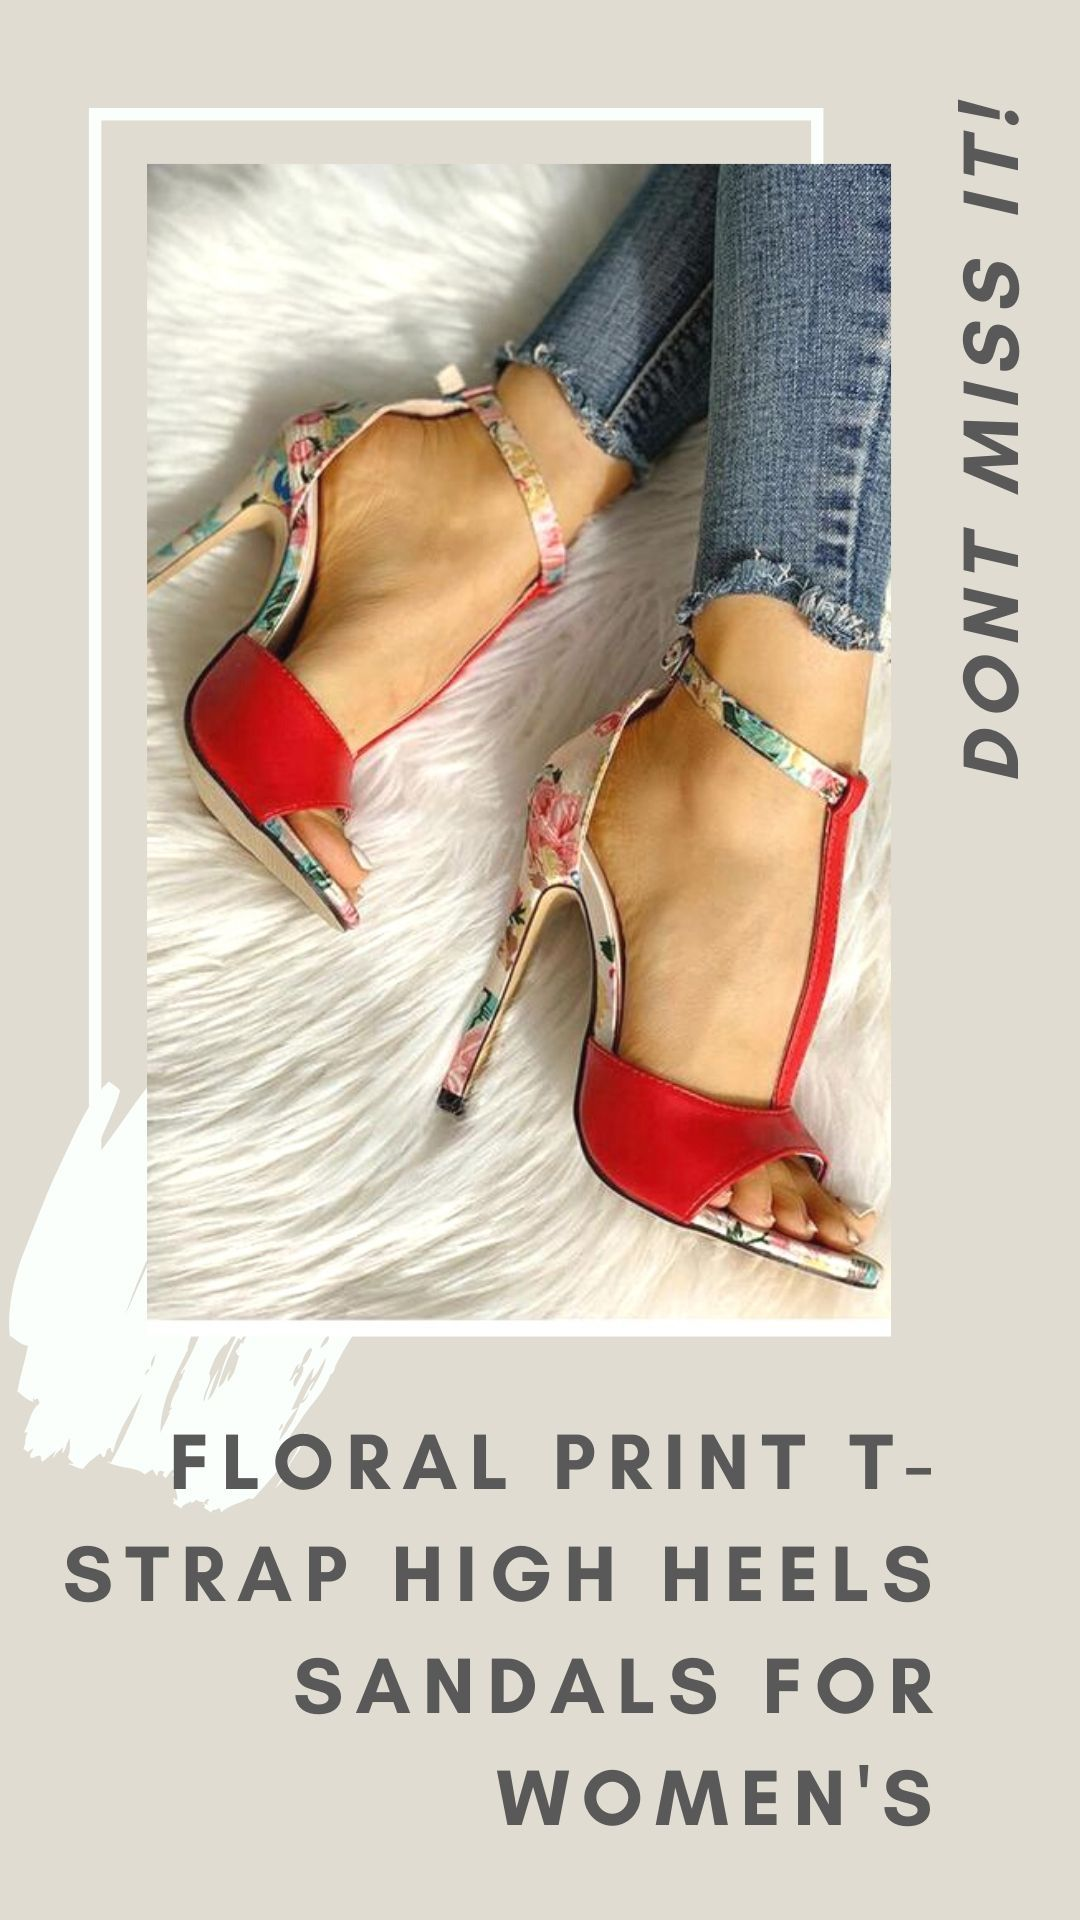 Floral Print T-Strap High Heels Sandals for Womens